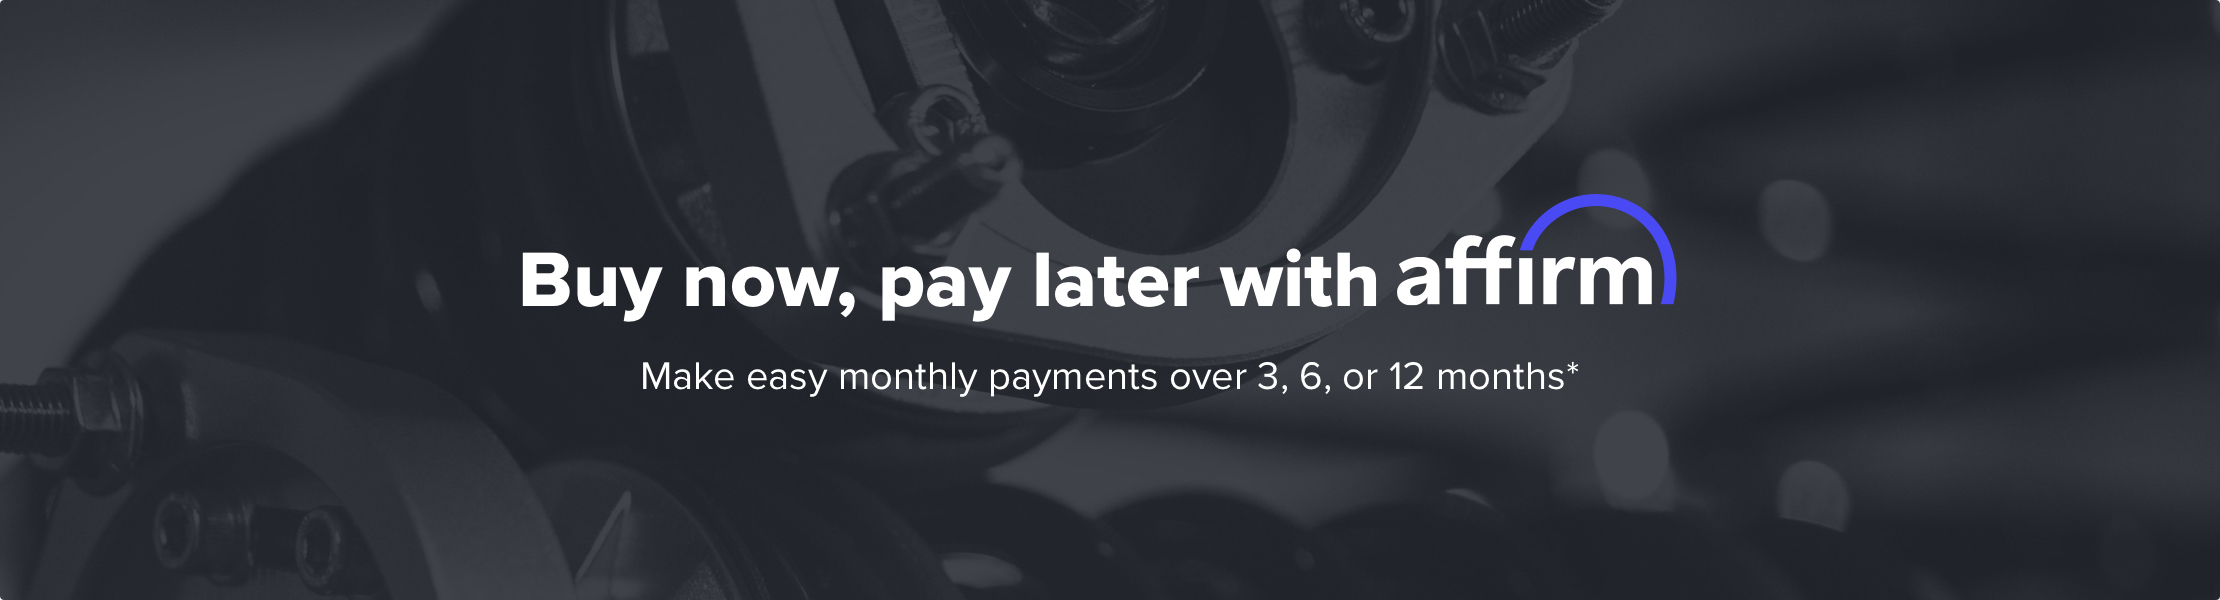 Buy now, pay later with Affirm